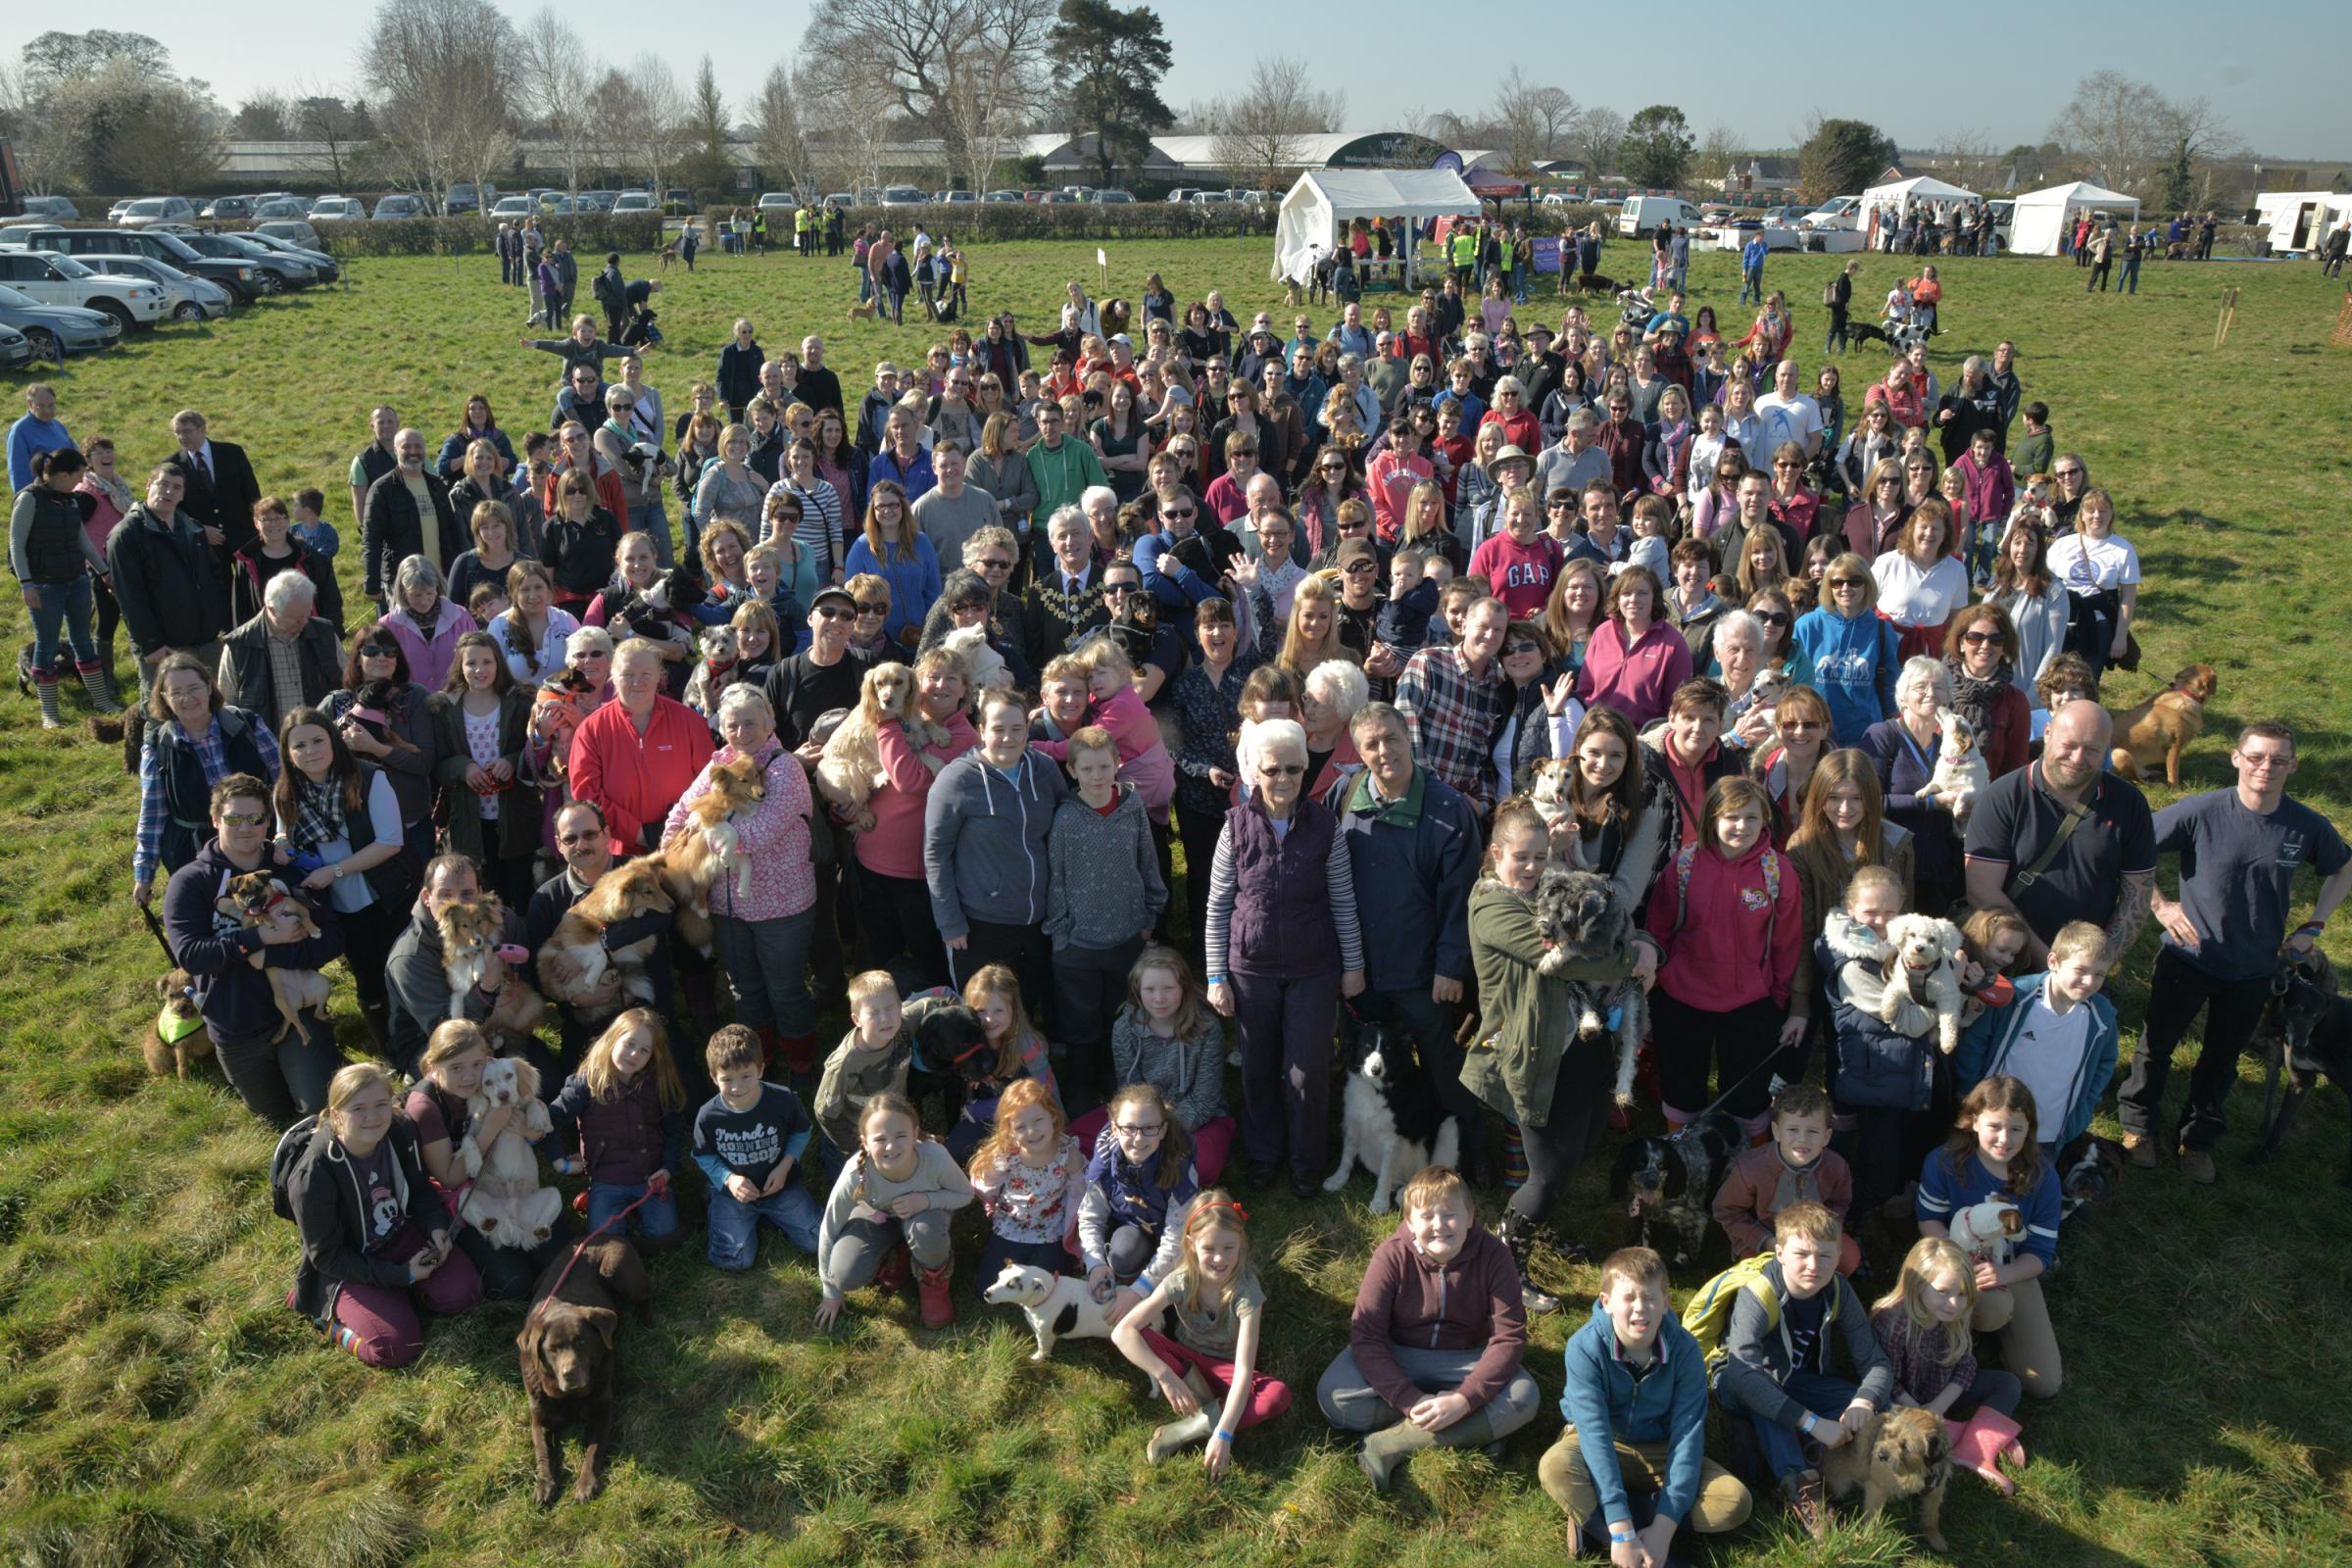 More than 250 people - and their dogs - took part in the Wags and Wellies dog walk in aid of St Michael's Hospice.